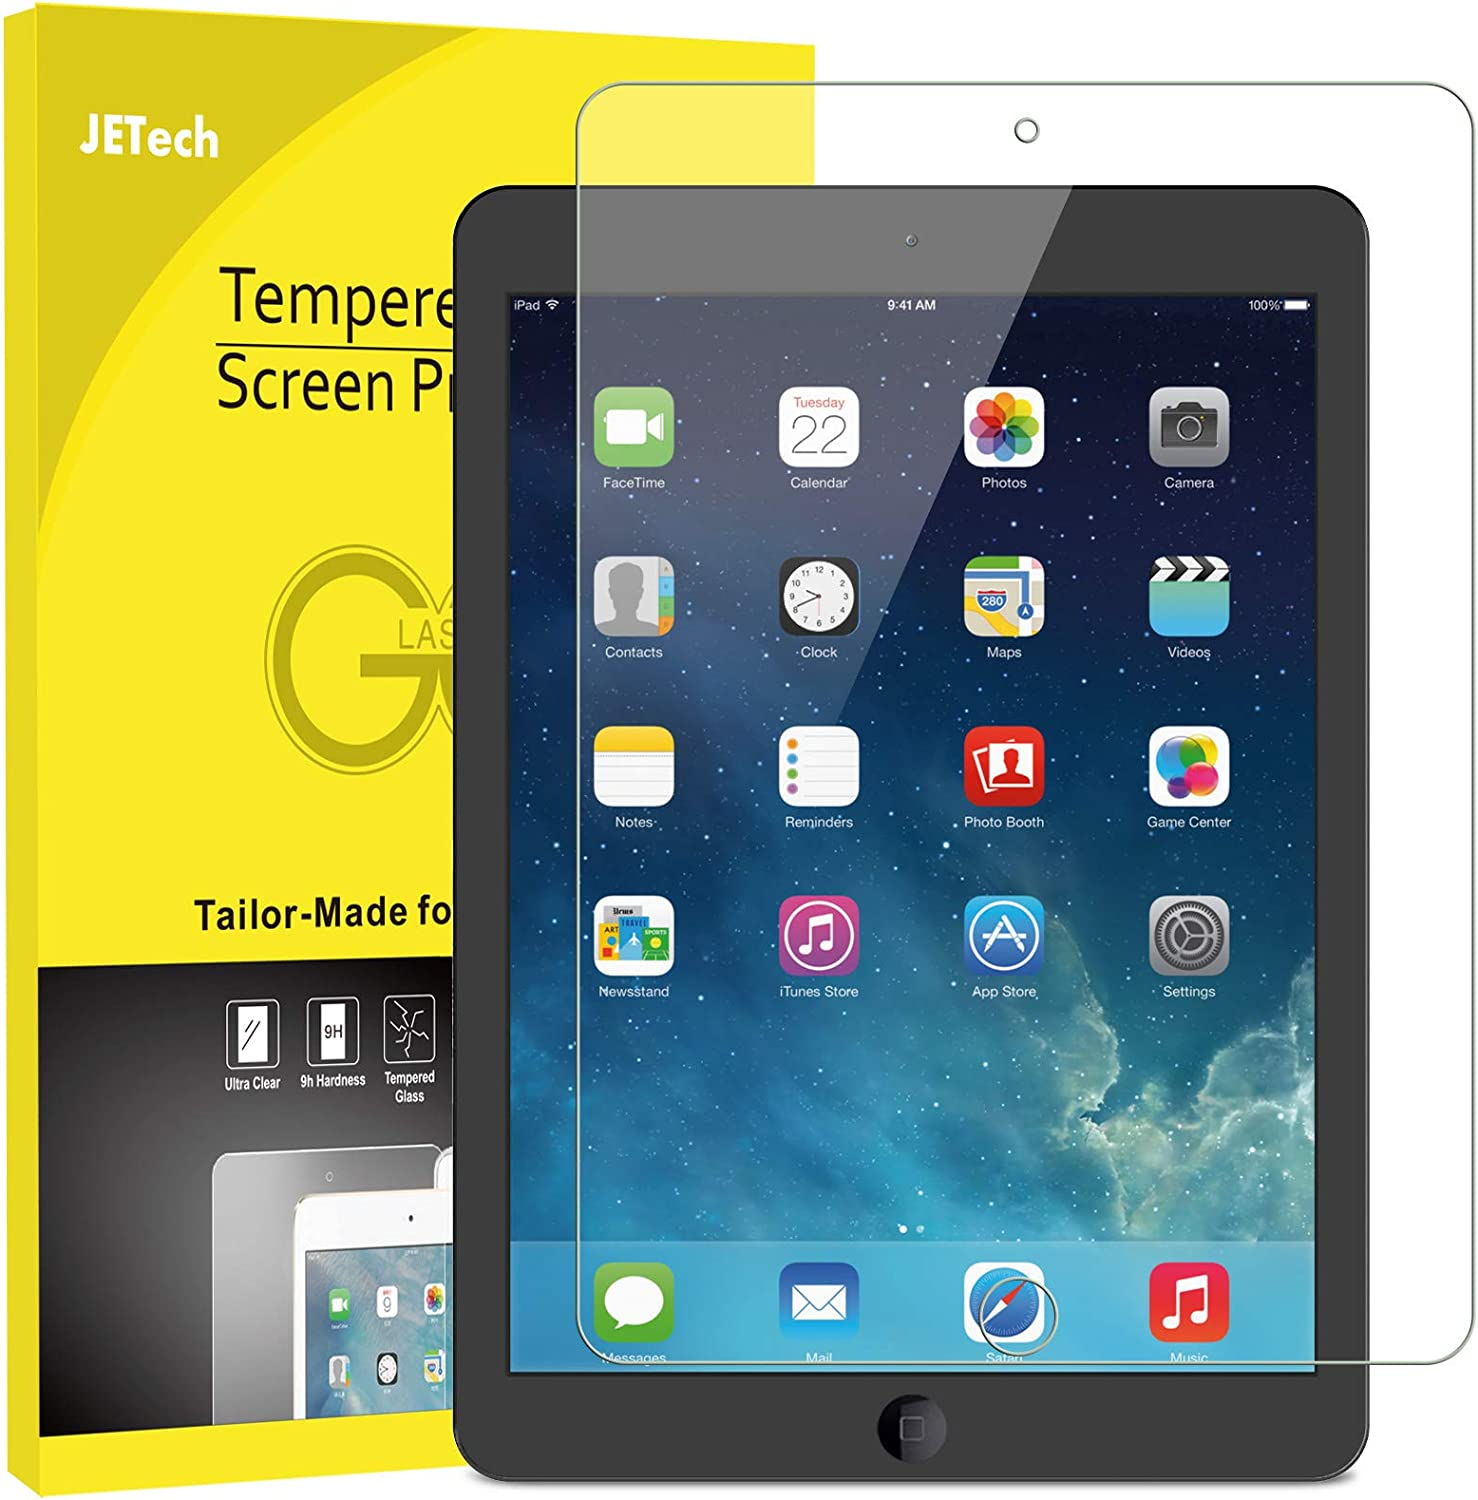 JETech Screen Protector for iPad (9.7-Inch, 2018/2017 Model, 6th/5th Generation), iPad Air 1, iPad Air 2, iPad Pro 9.7-Inch, Tempered Glass Film: Computers & Accessories